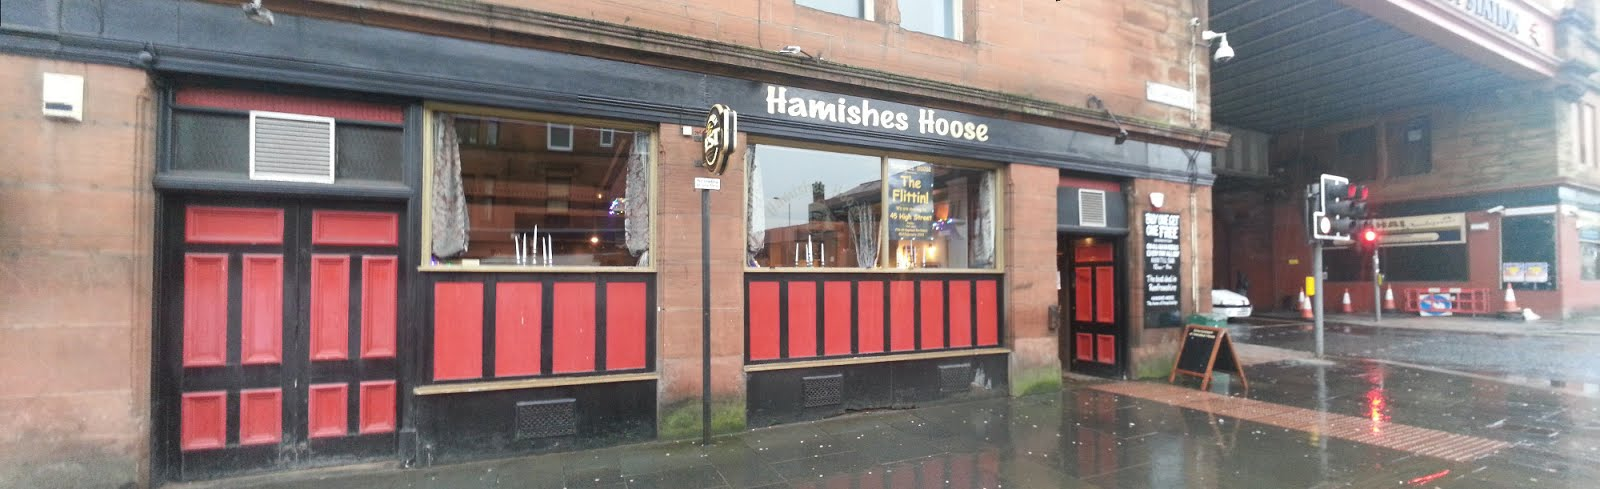 Hamishes Hoose, Paisley